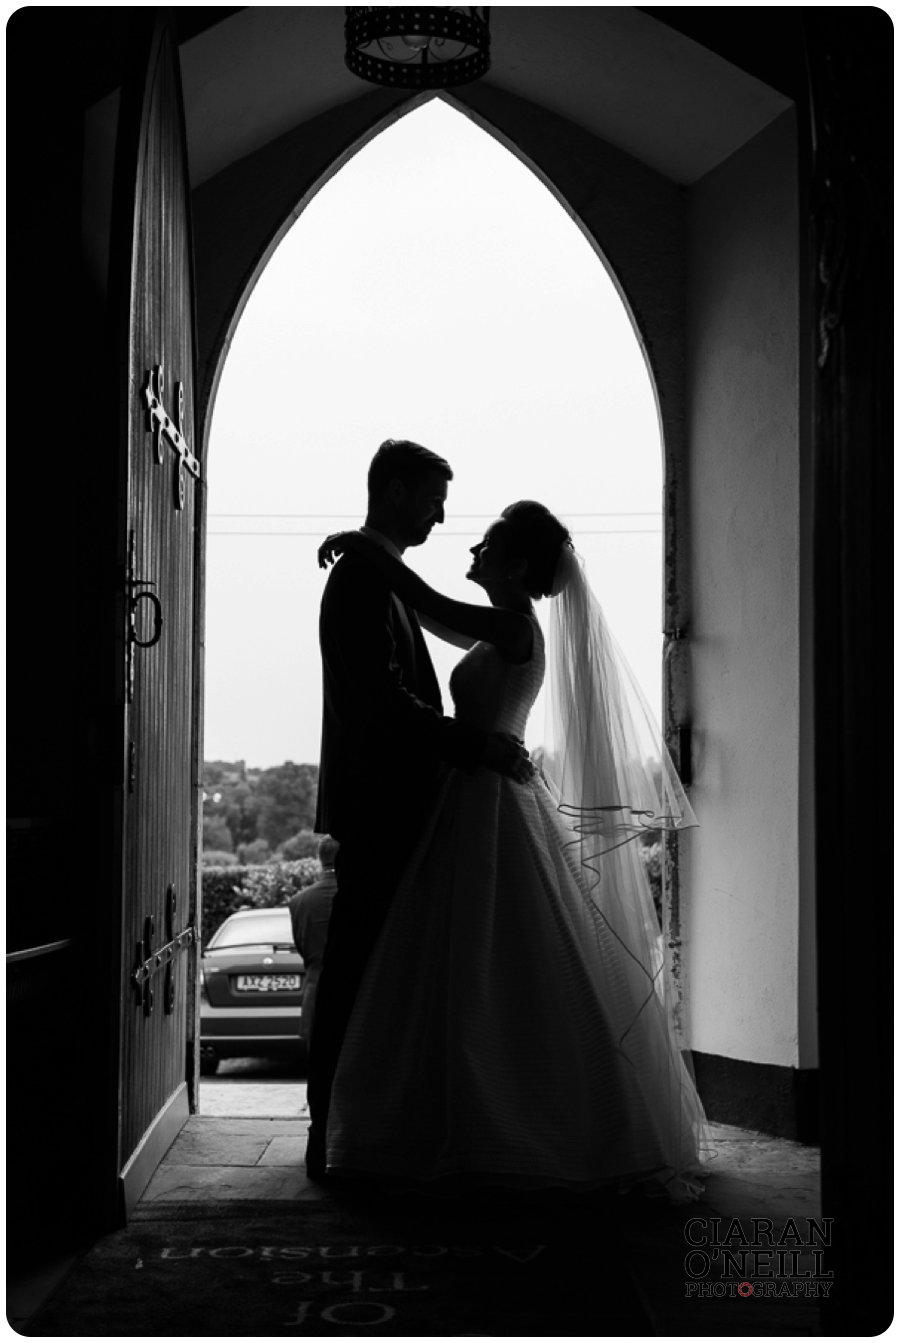 Kristina & Nigel's wedding at Galgorm Resort & Spa by Ciaran O'Neill Photography 05